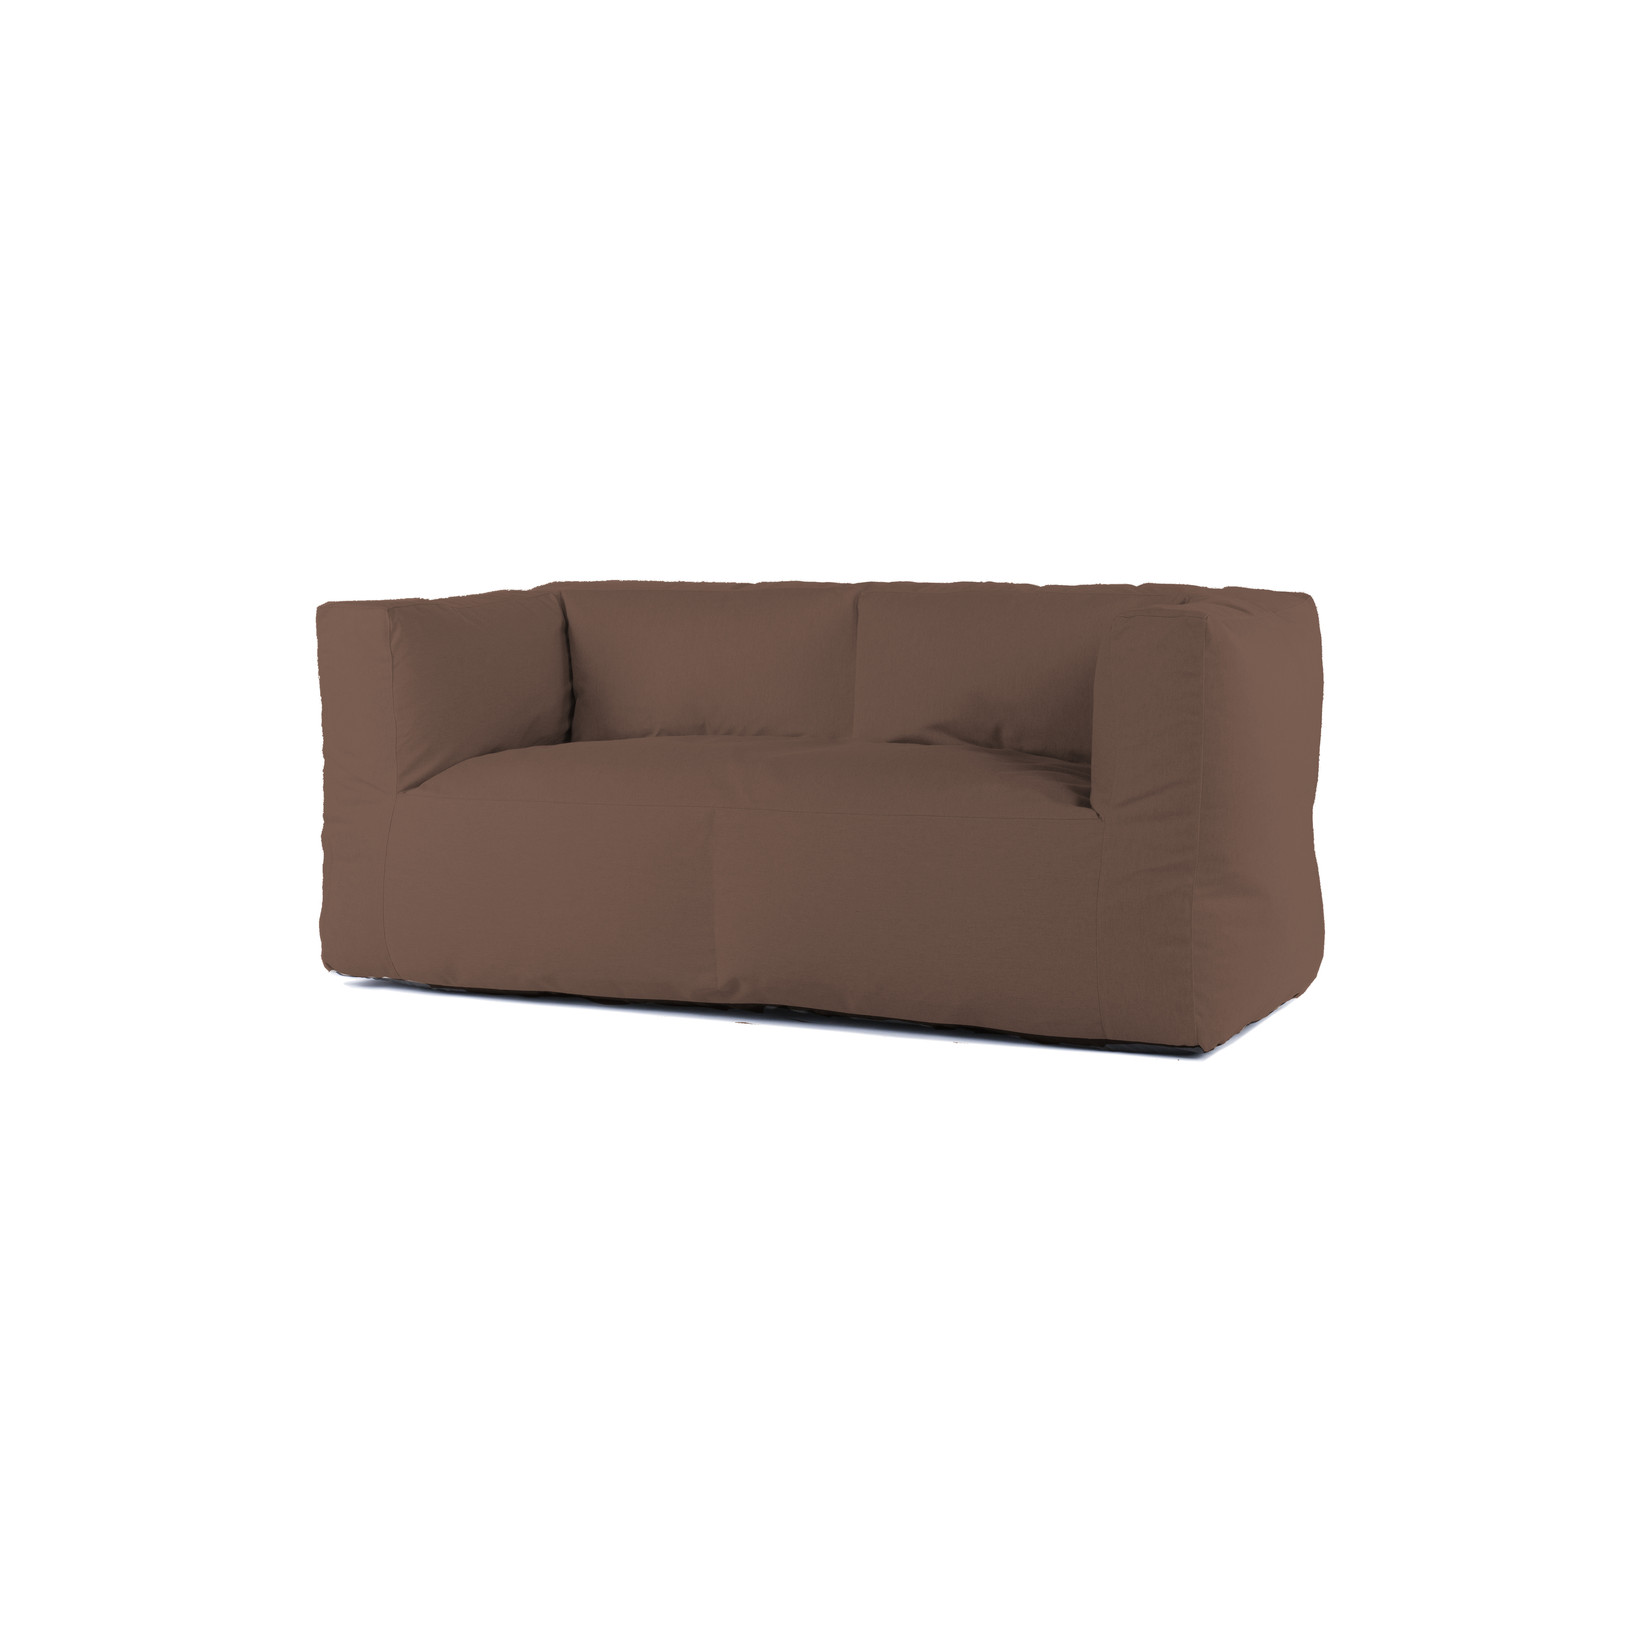 Bryck Bryck Couch   Two seat   ECOLLECTION